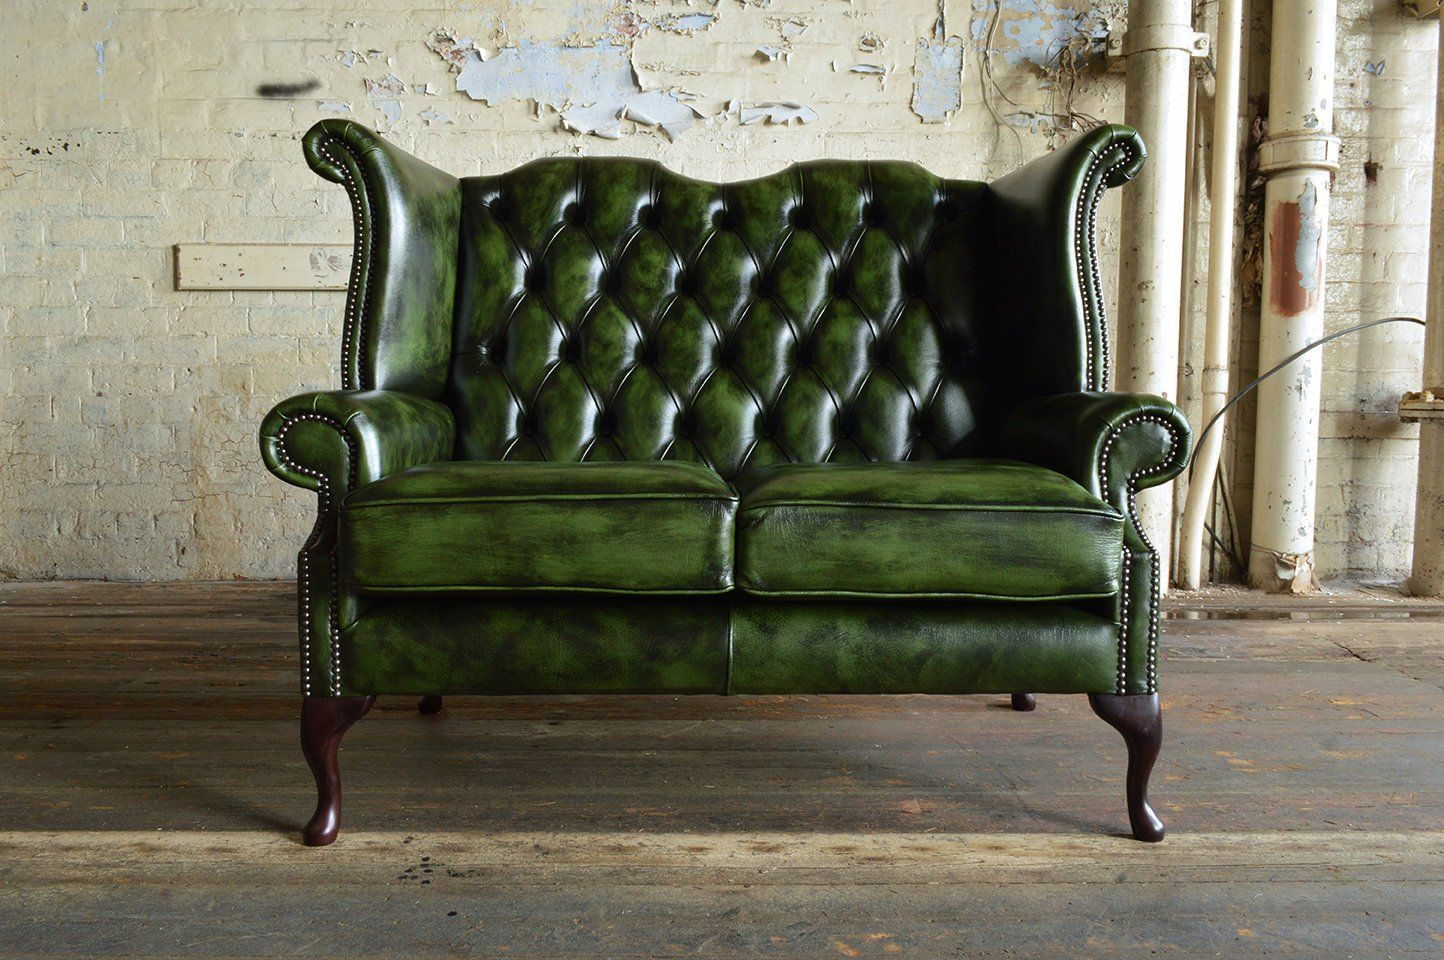 British Handmade Traditional Green Leather 2 Seater High Back Chesterfield S Classic Chesterfield Sofa Green Leather Chesterfield Sofa Chesterfield Sofa Design